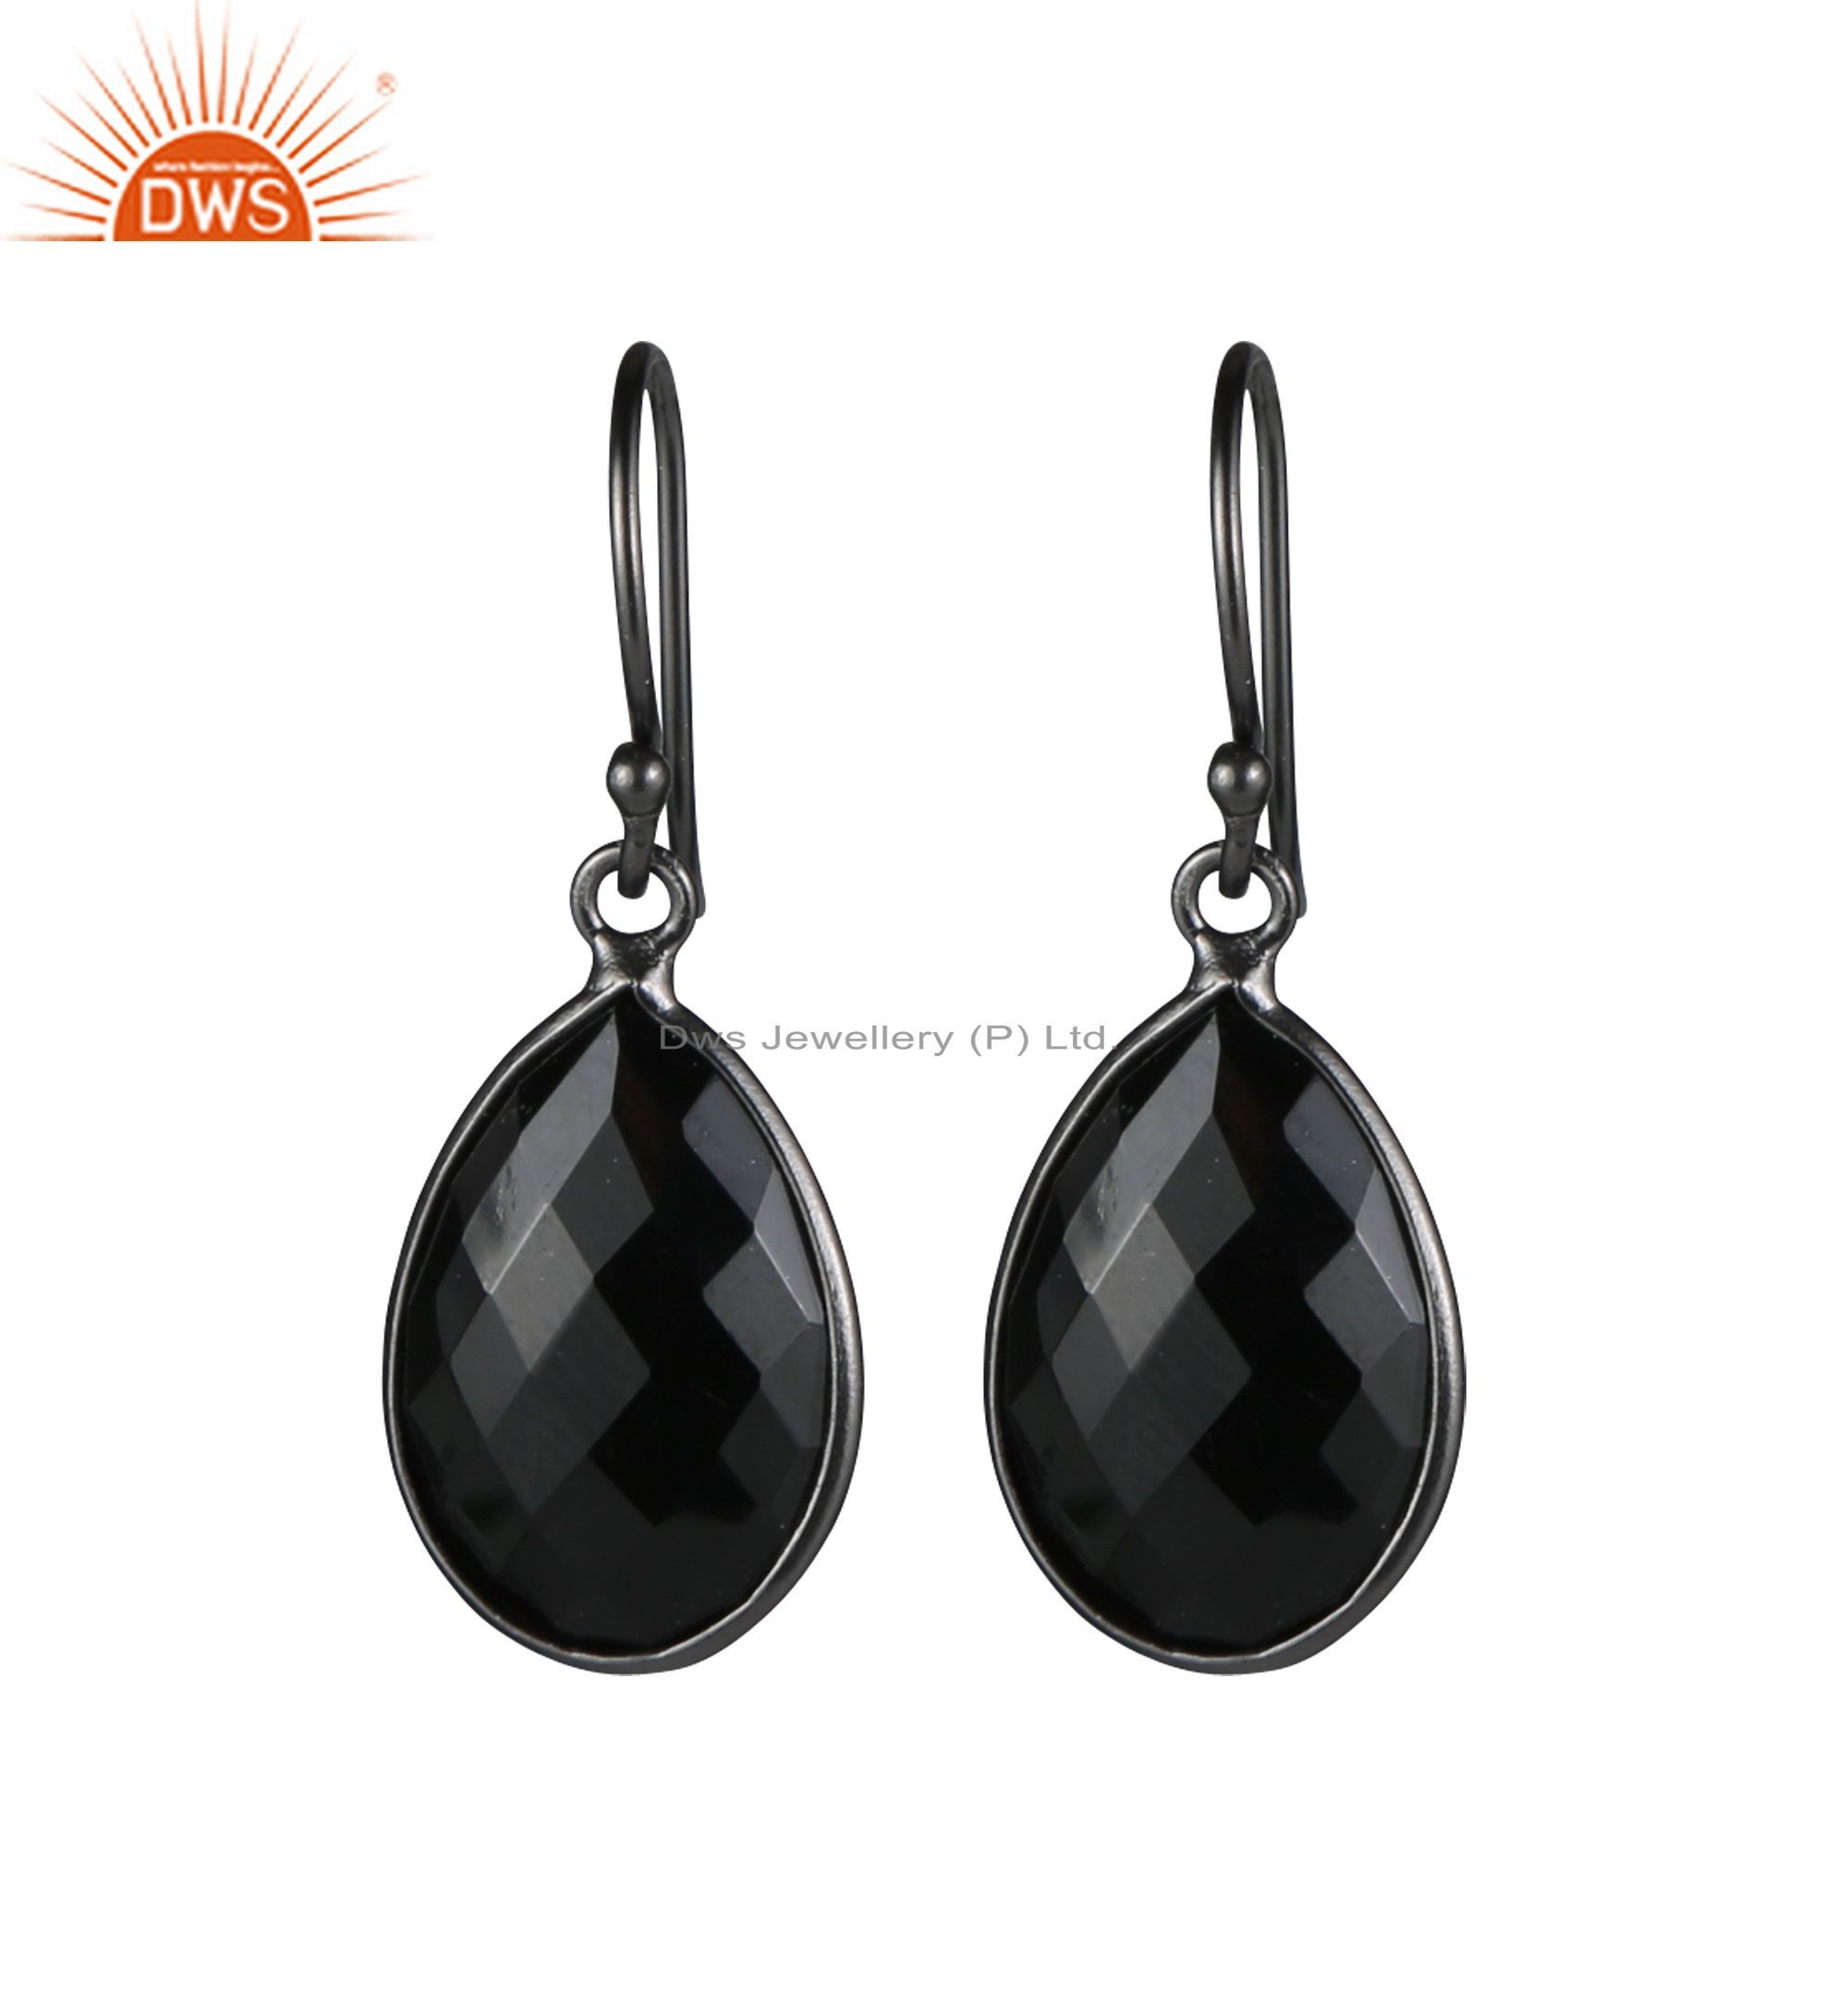 Oxidized Solid Sterling Silver Faceted Black Onyx Bezel Set Teardrop Earrings